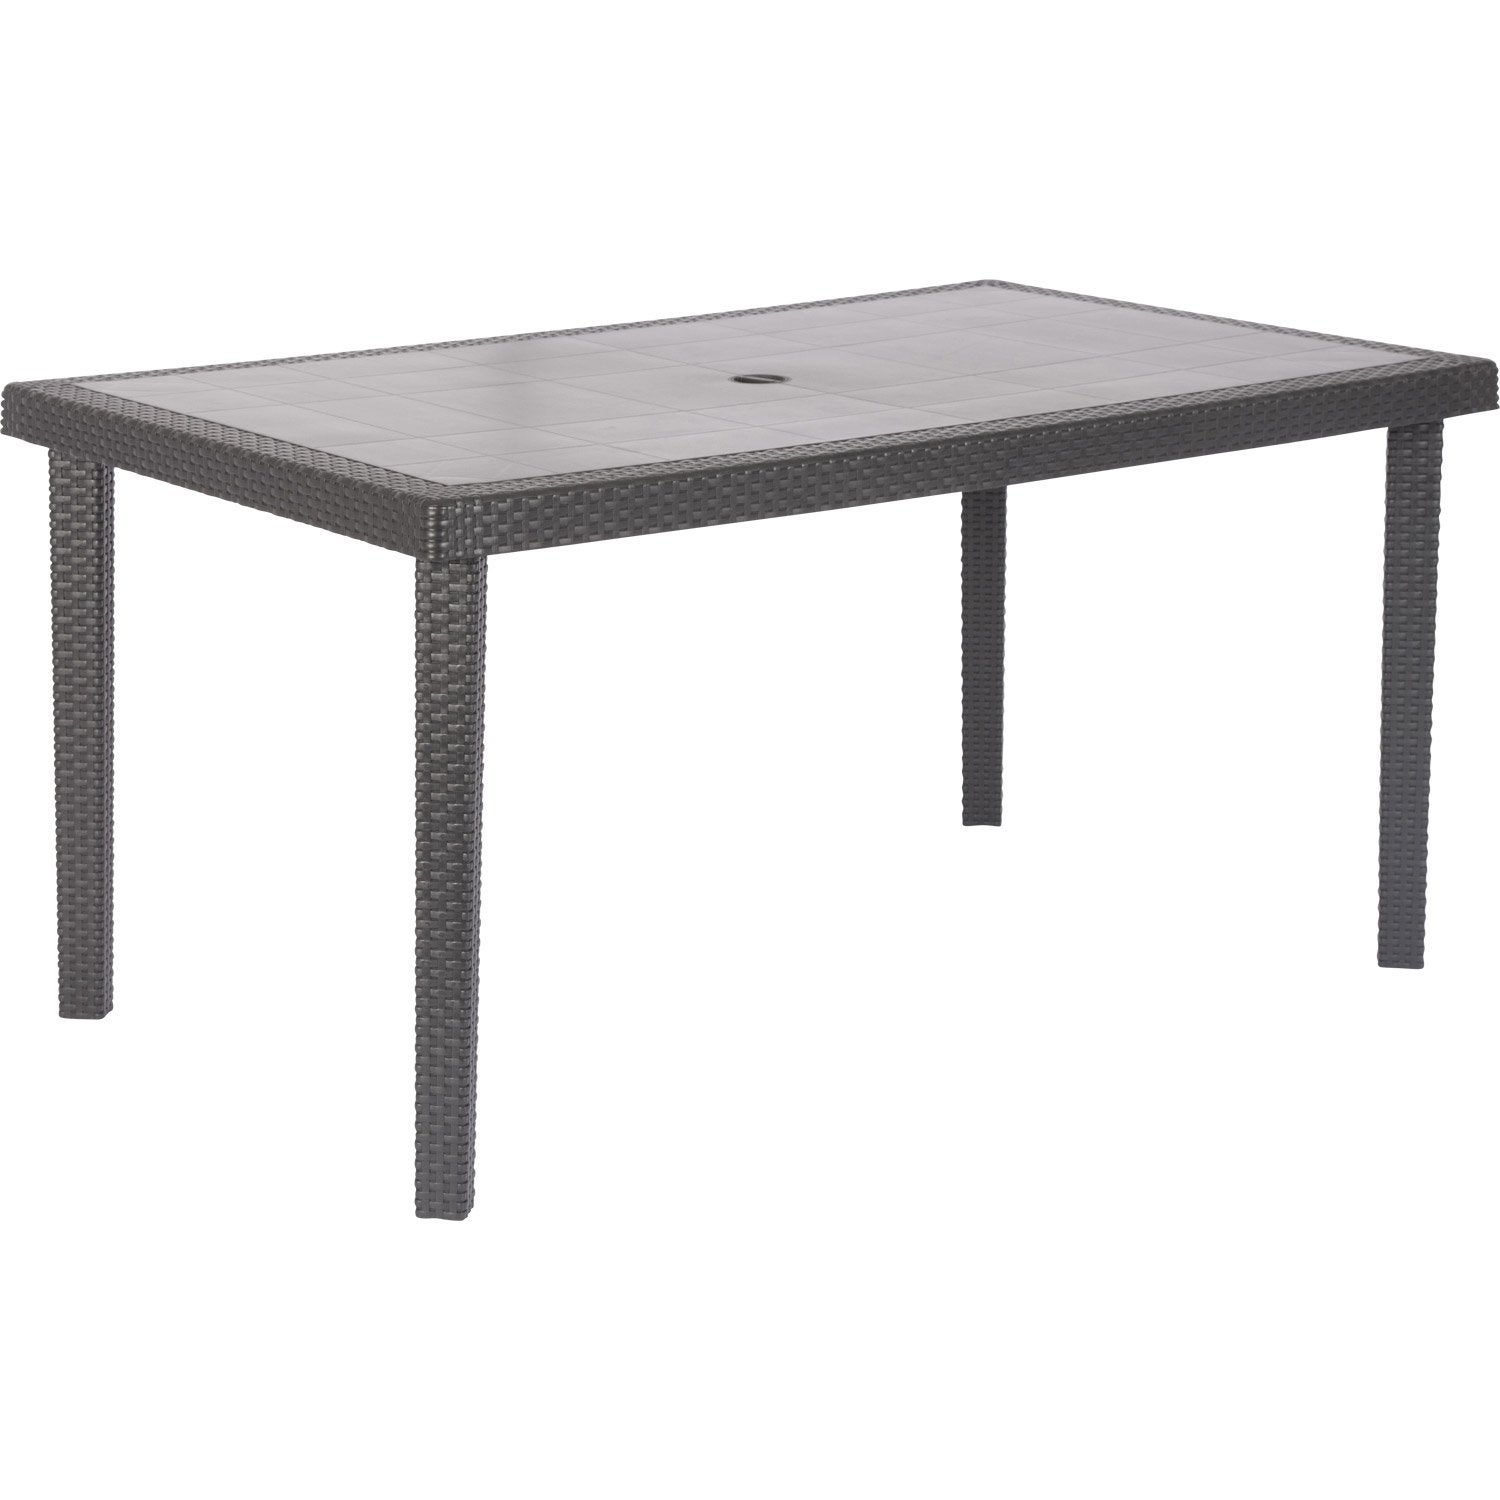 Table exterieur for Table exterieur castorama